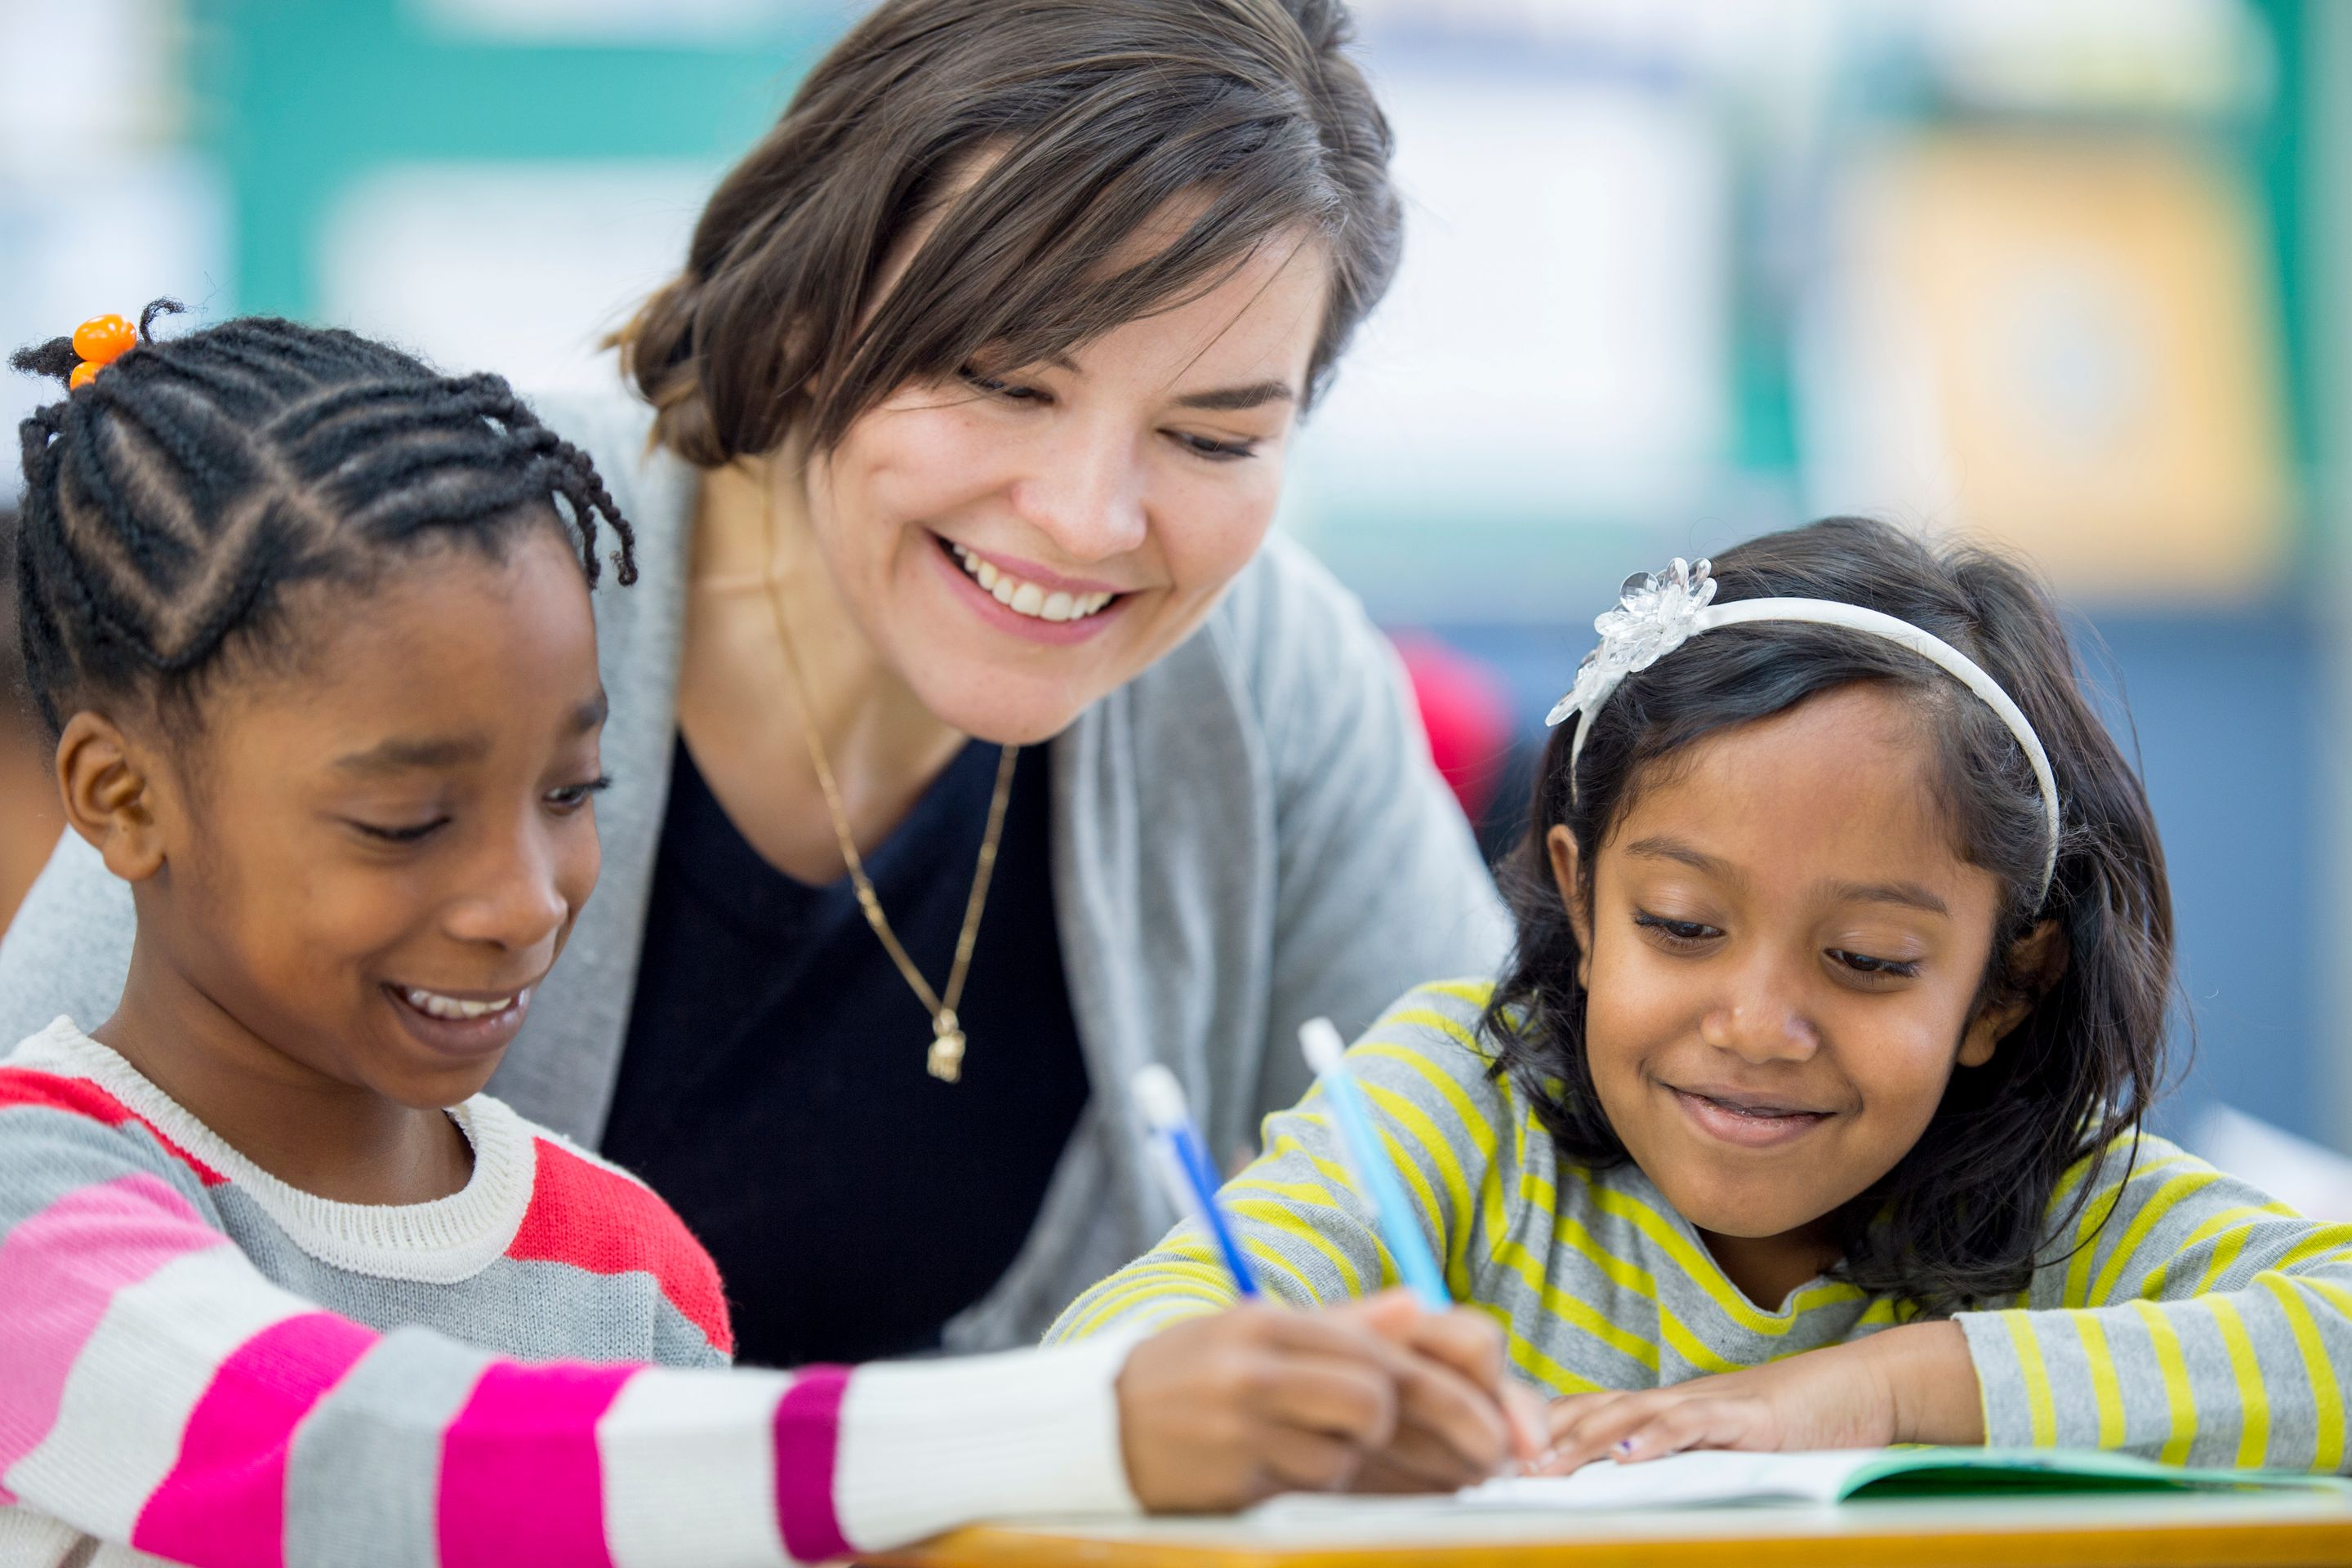 A teacher helping two elementary students with schoolwork